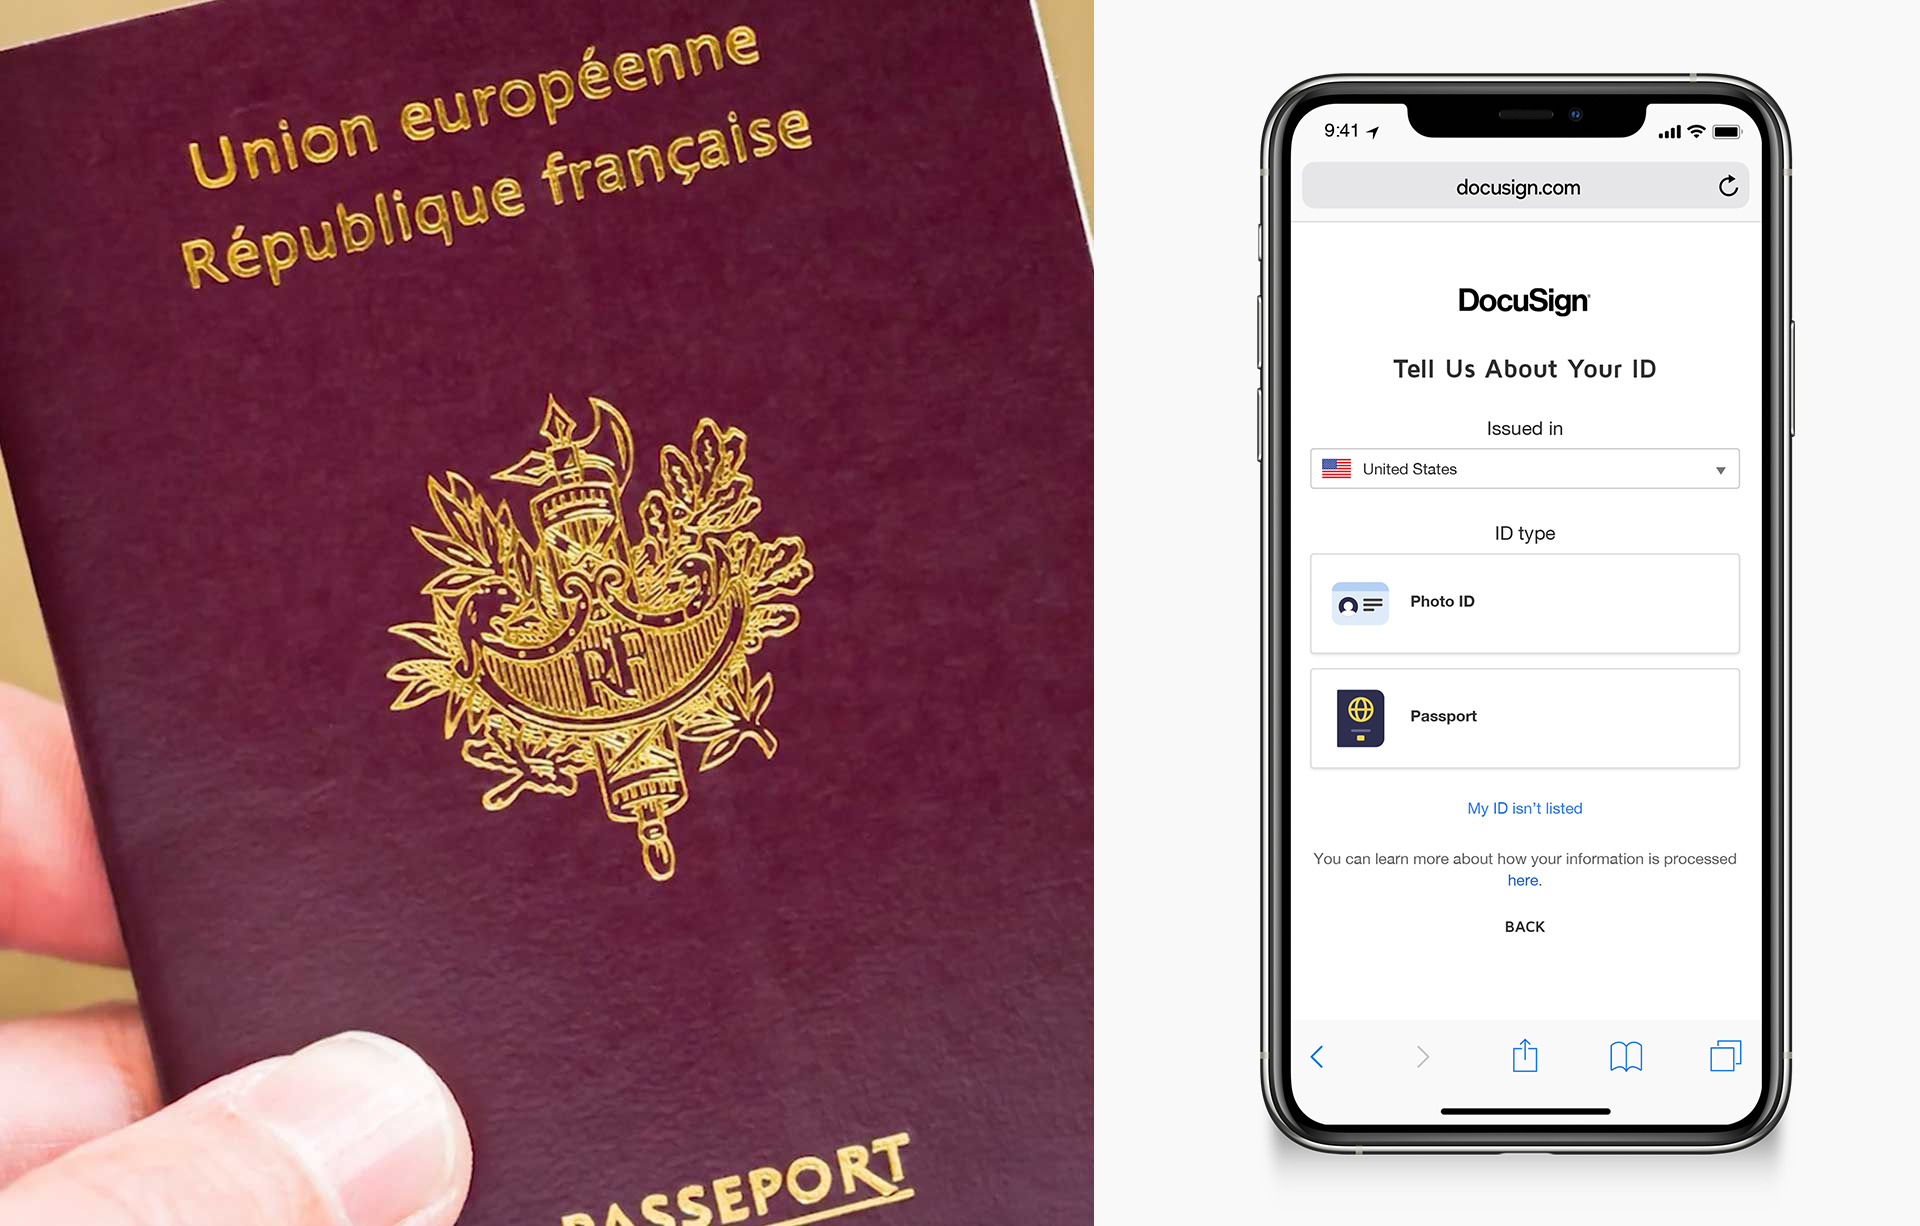 """A split image showing a hand holding a passport on the left and on the right a phone prompting to """"Tell us about your ID"""""""